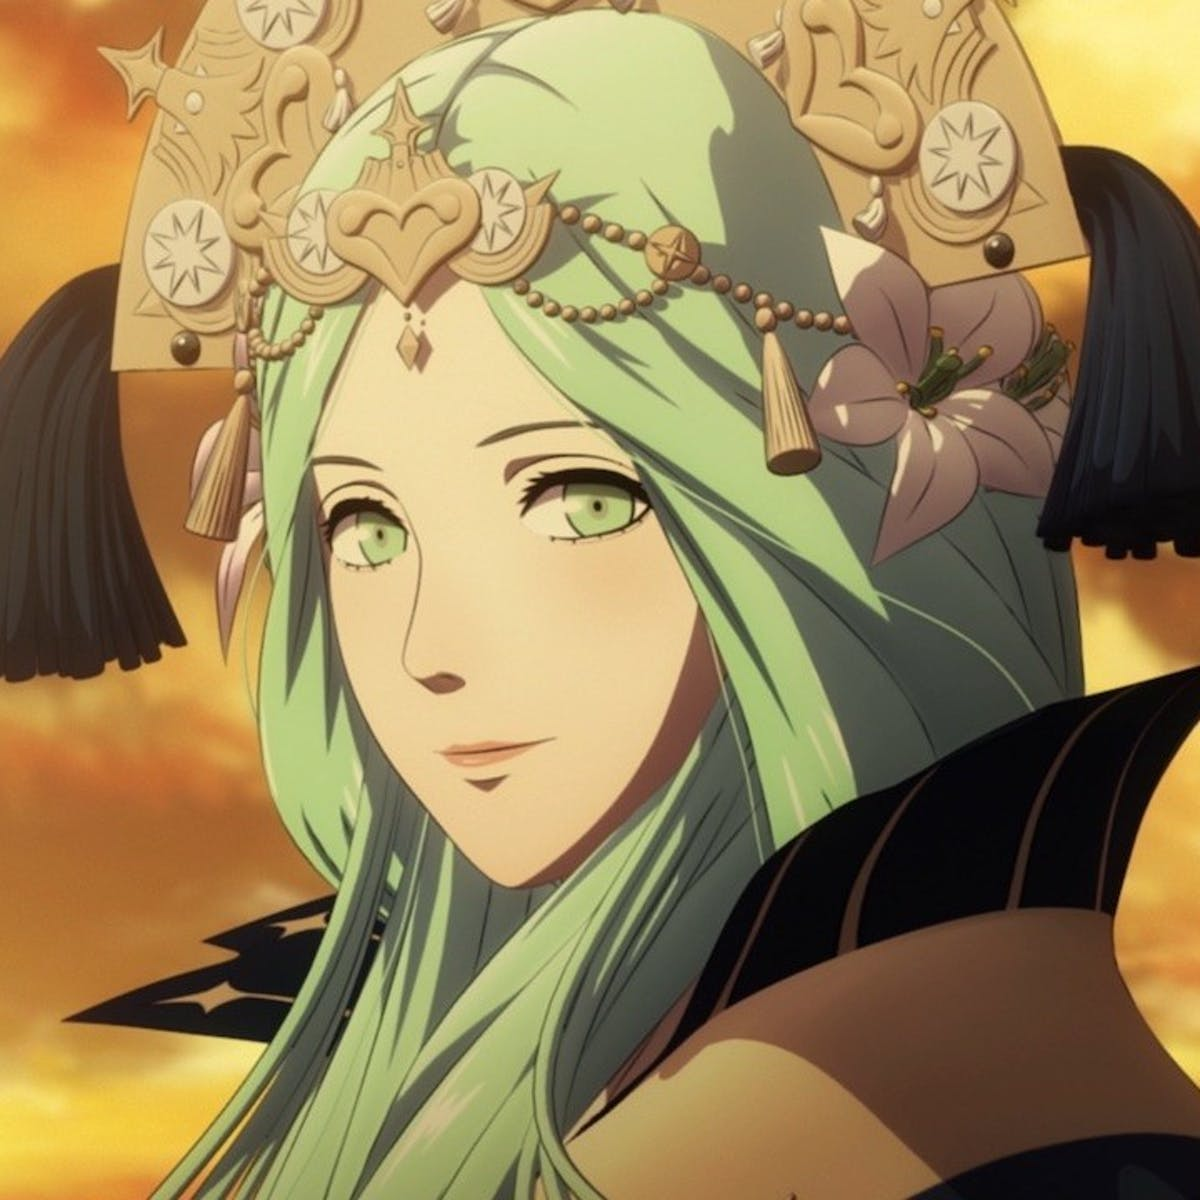 'Fire Emblem: Three Houses' got a raw deal in the Game Awards nominations